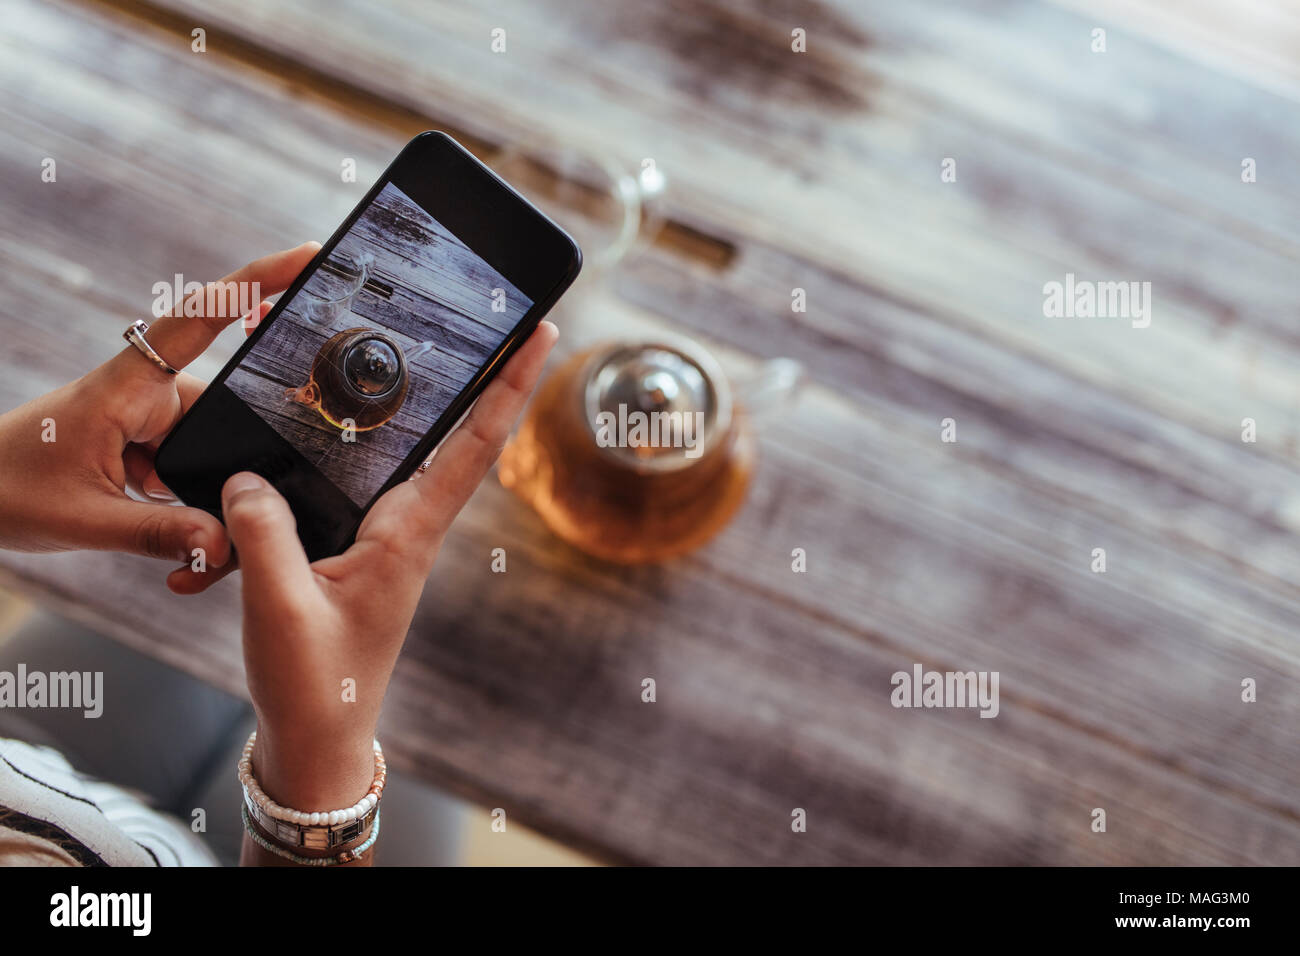 Close up of a woman capturing photos of a glass teapot using a mobile phone for her food blog. Food blogger shooting photos for her blog. - Stock Image